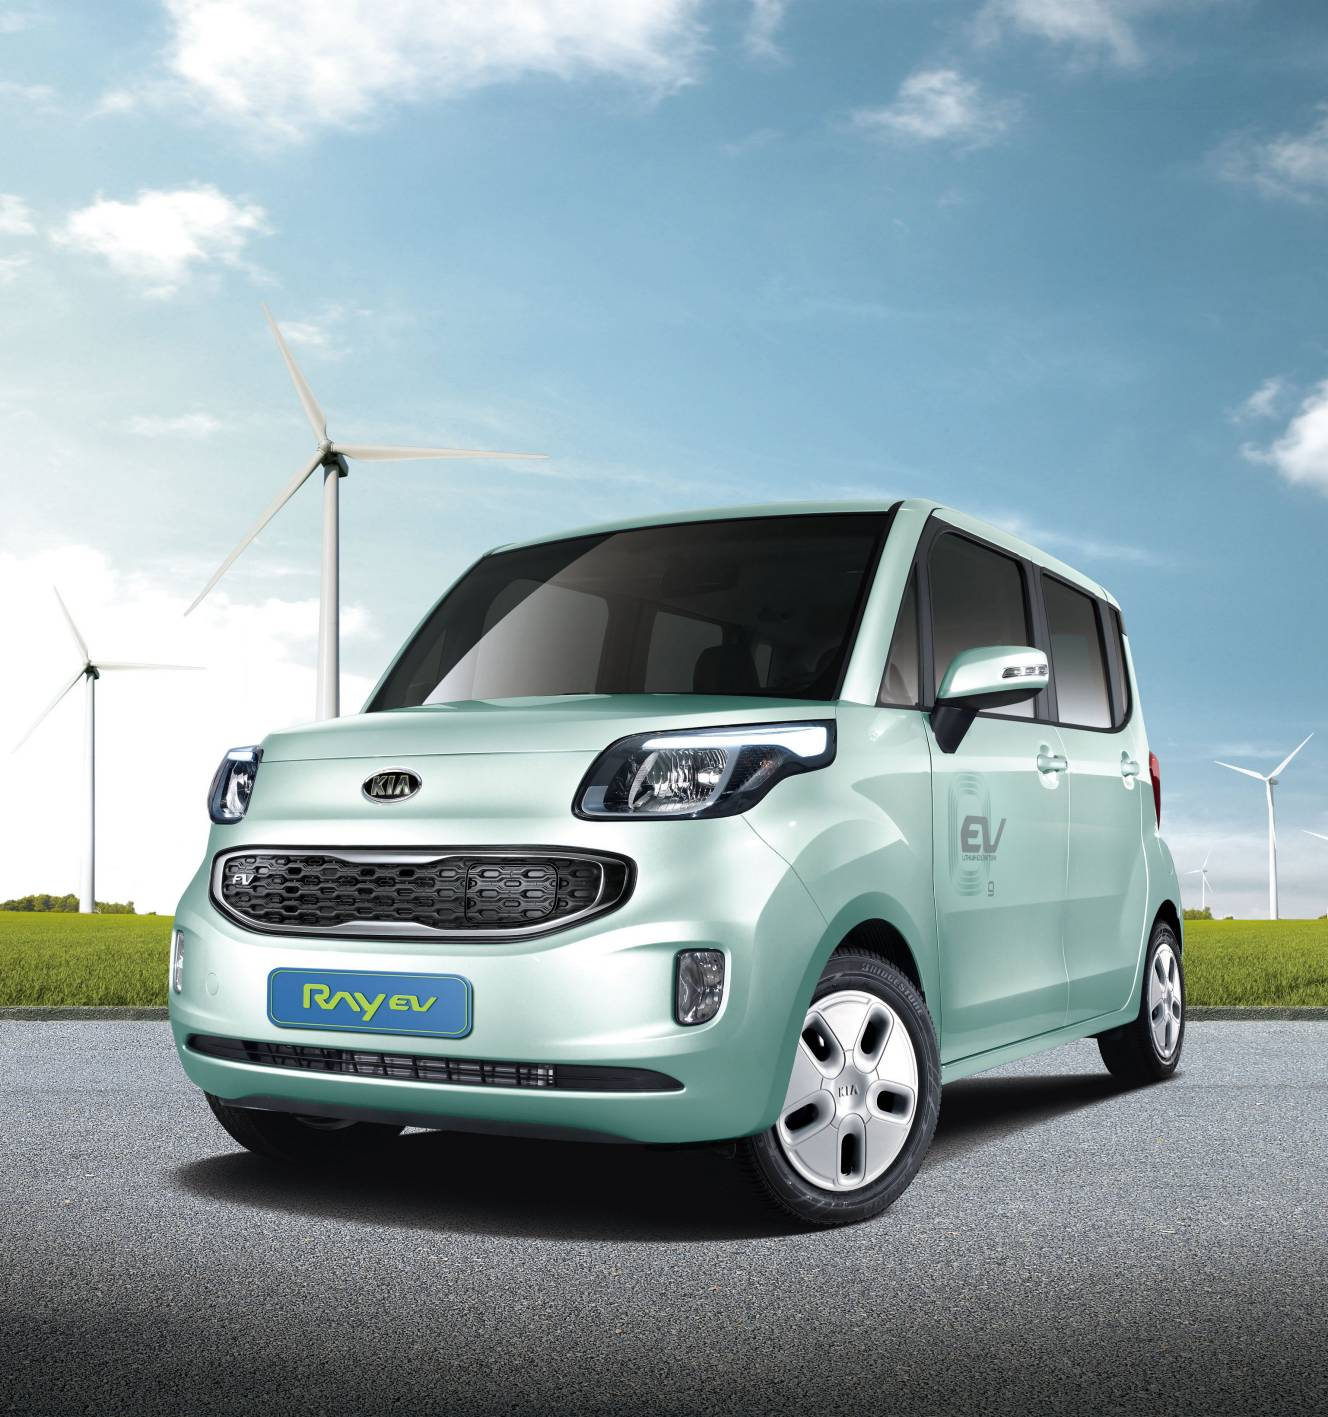 Kia Picanto X Line S 5 Door Hatchback: KIA Motors : Korea's First Electric Vehicle Unveiled